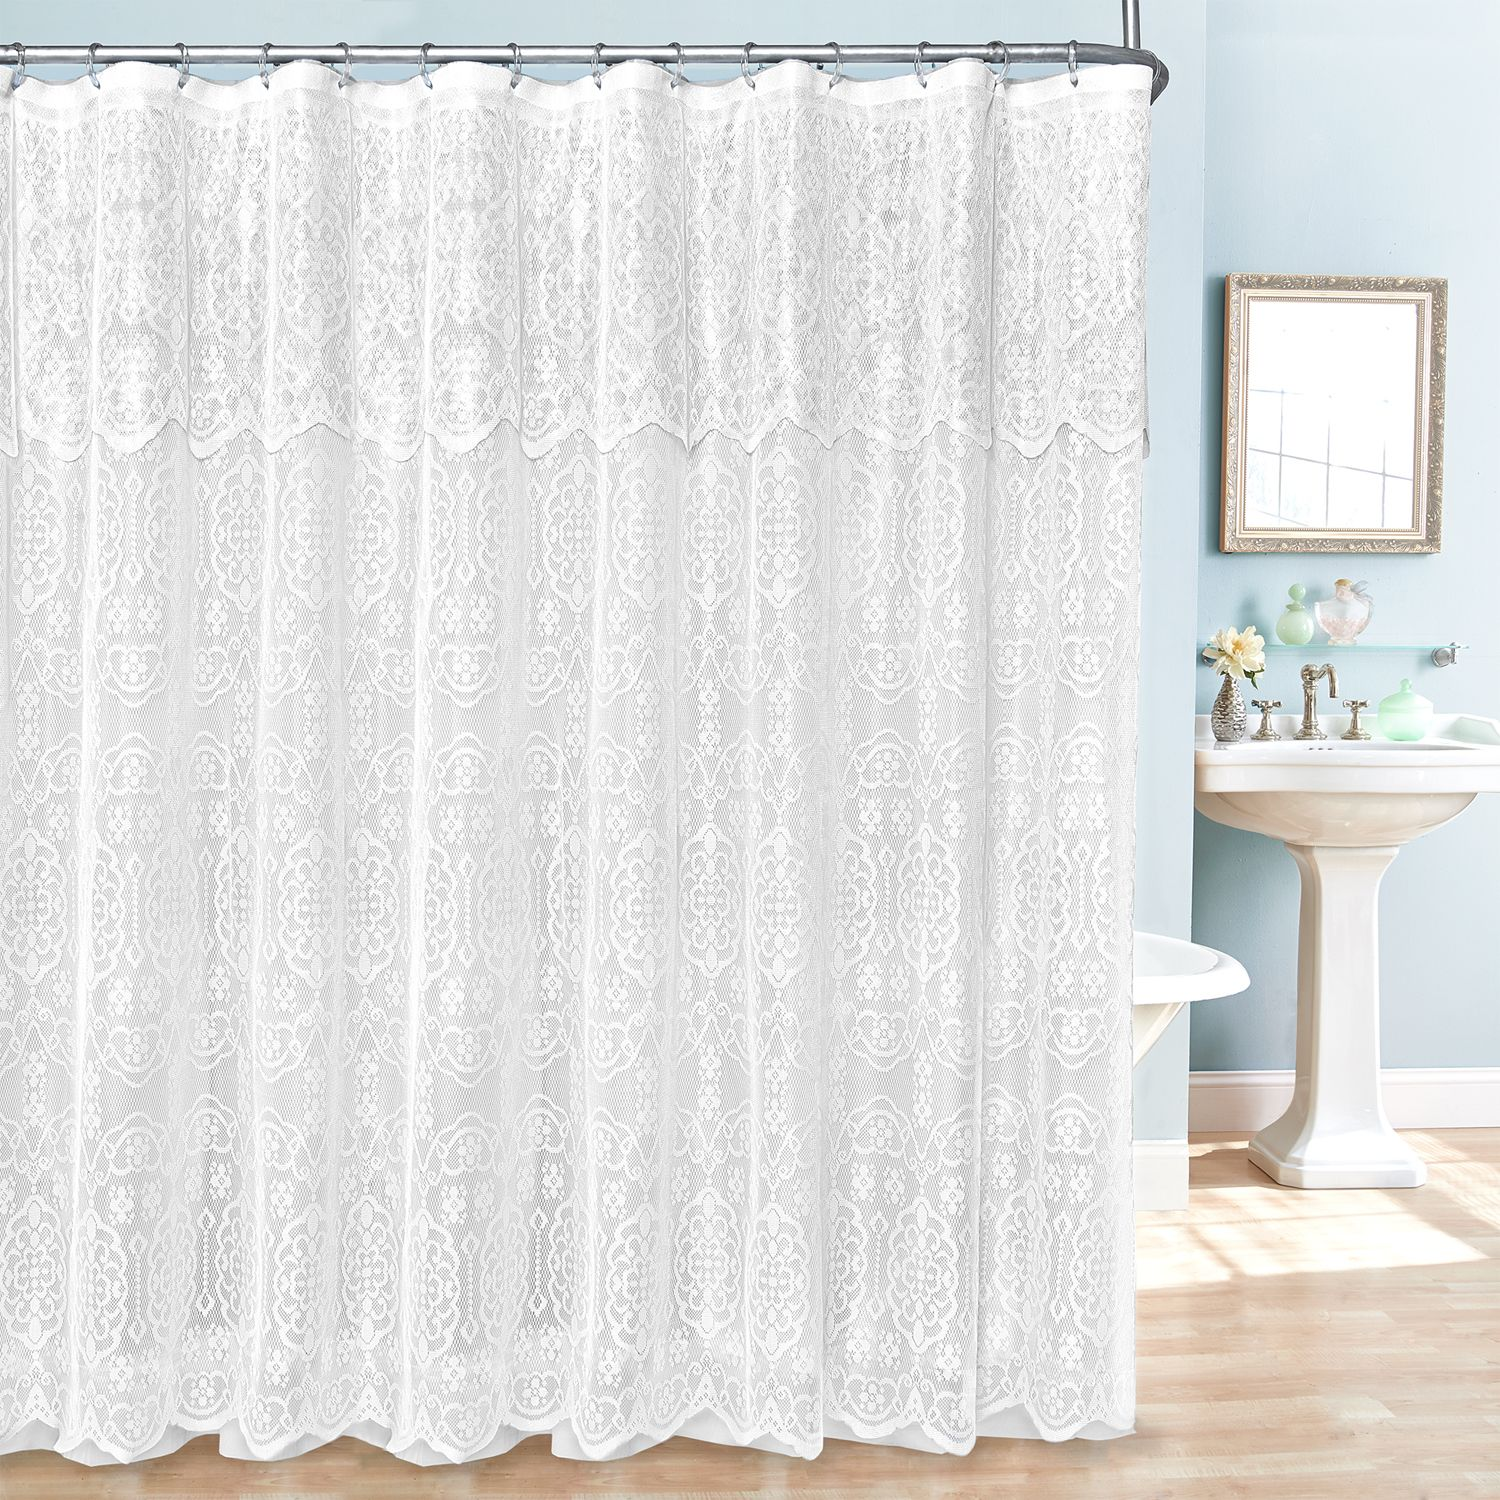 Fabric Shower Curtain, Liner U0026 Hook Set